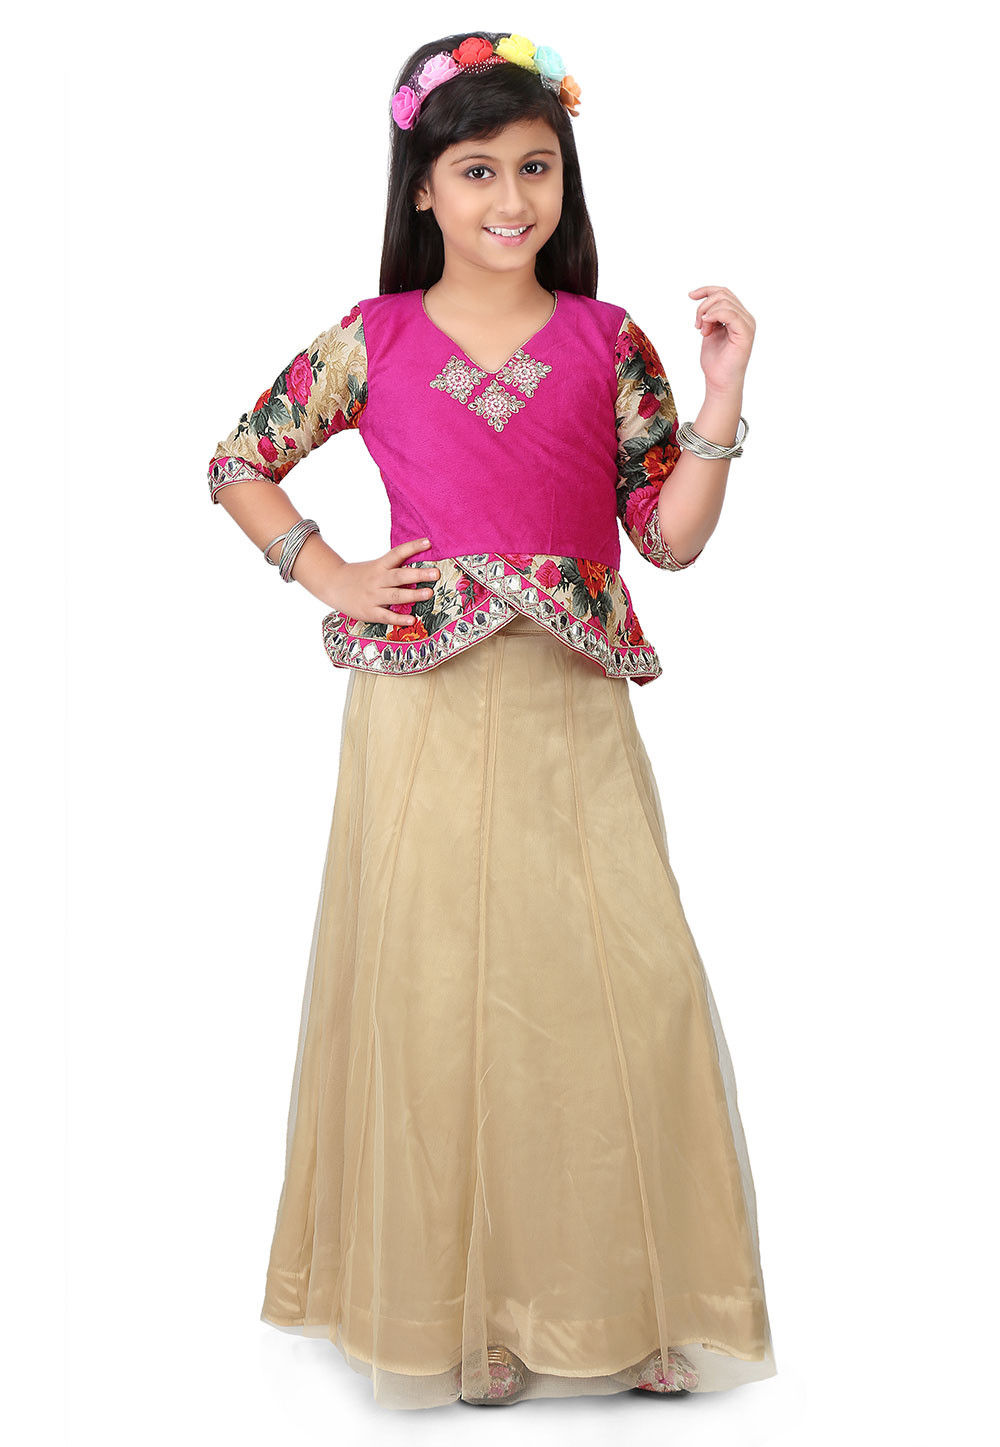 Printed Velvet Top with Skirt in Fuchsia and Beige